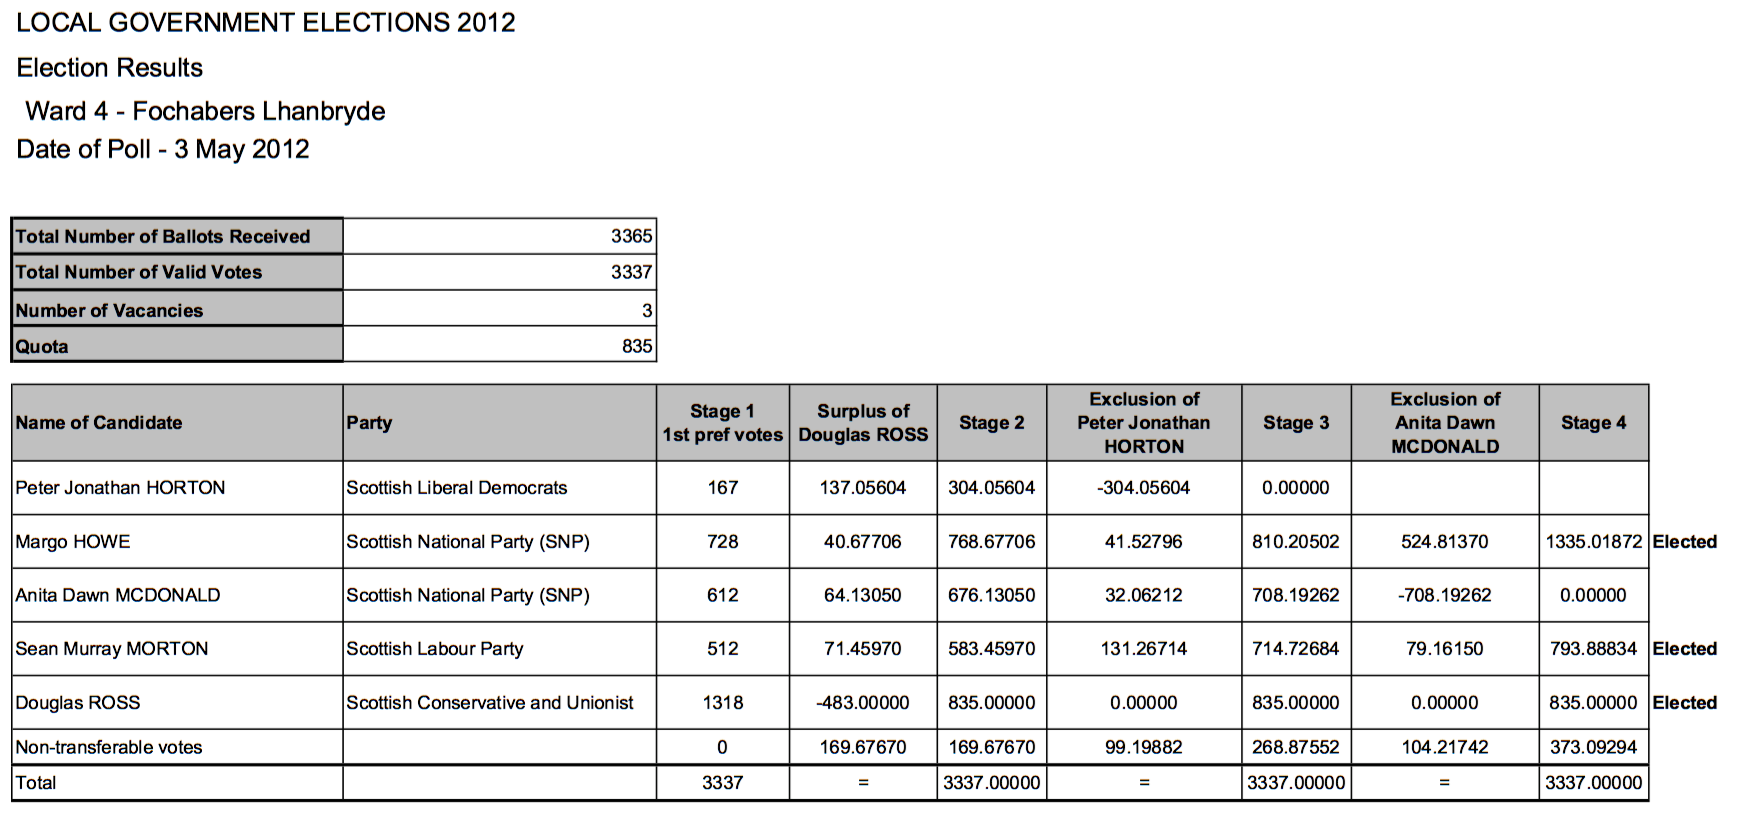 An example from a local election in Scotland, illustrating the fractional allocation of a candidate's preferences.